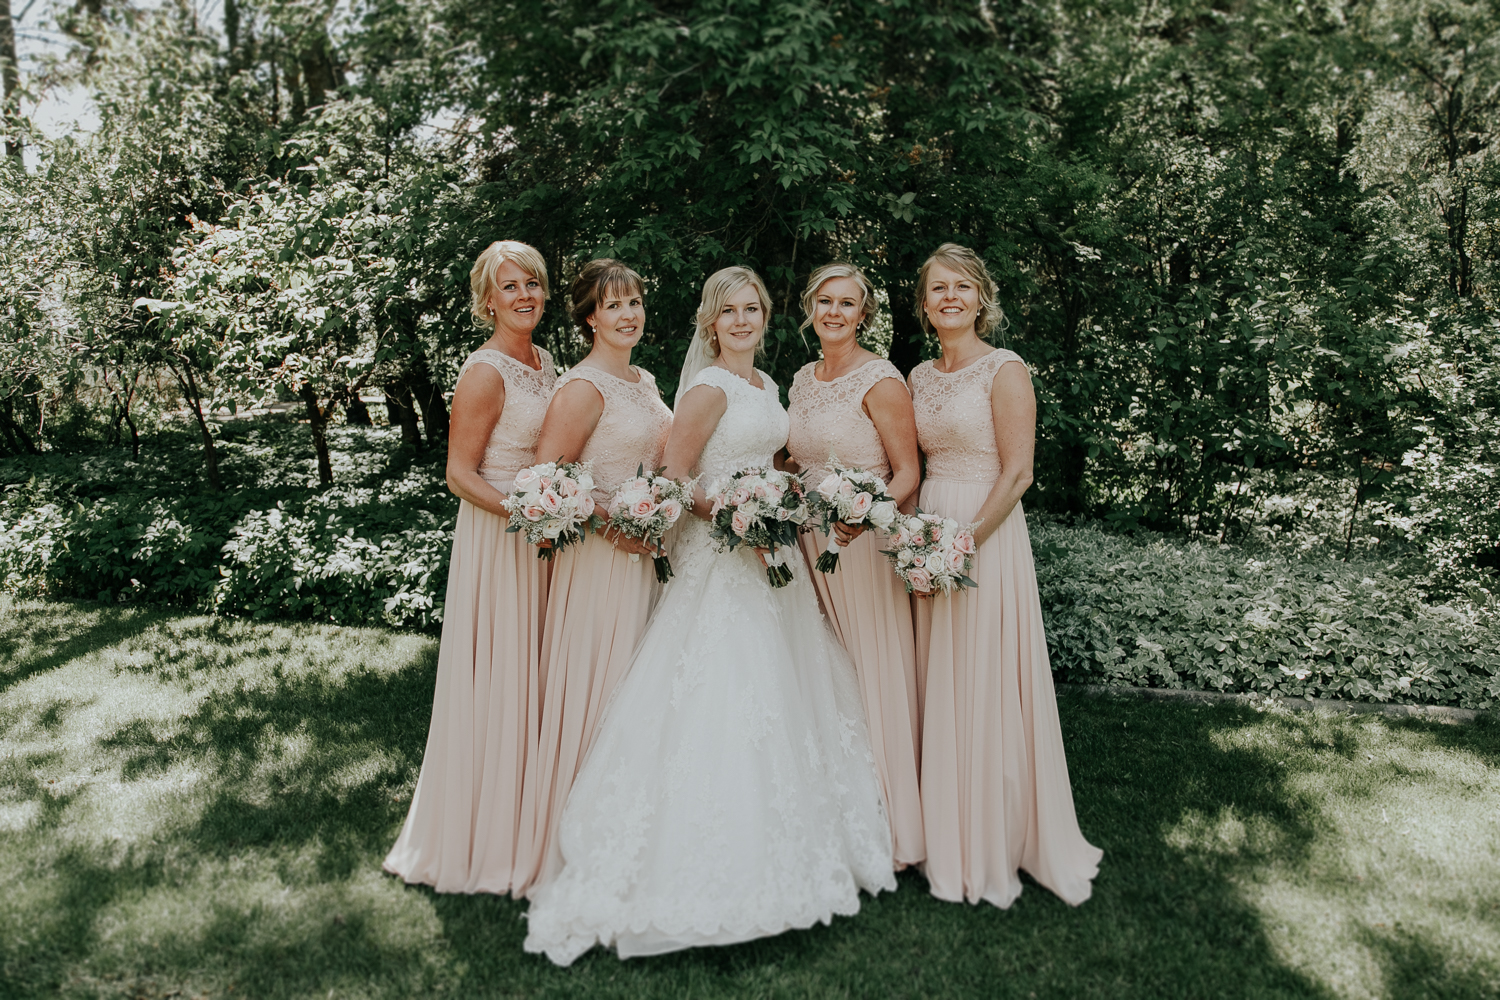 norland-estate-wedding-lethbridge-photography-love-and-be-loved-photographer-picture-image-photo-7.jpg